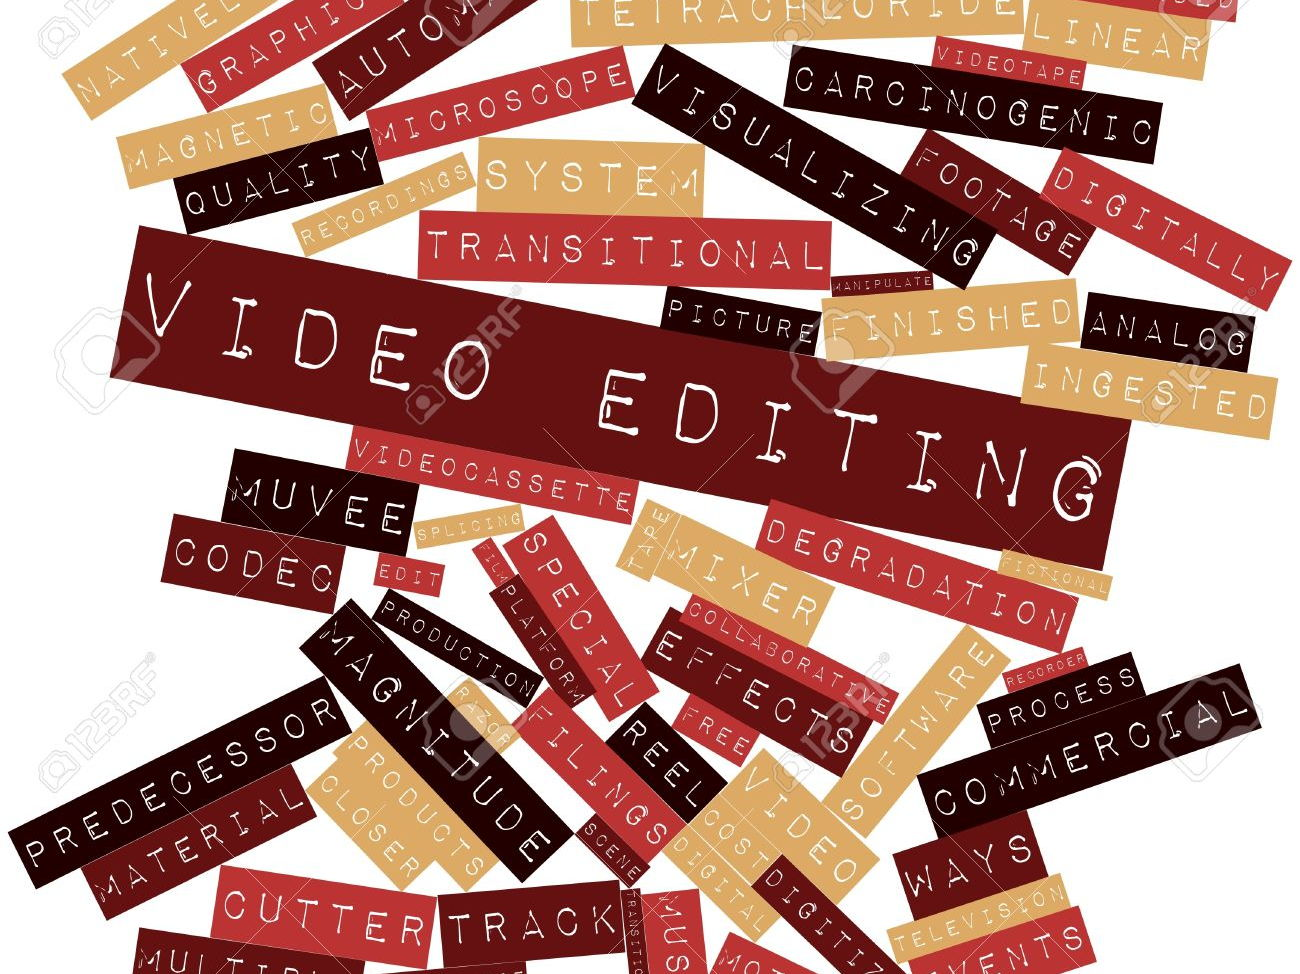 Media Studies - Editing terms (Level 2 and Level 3)